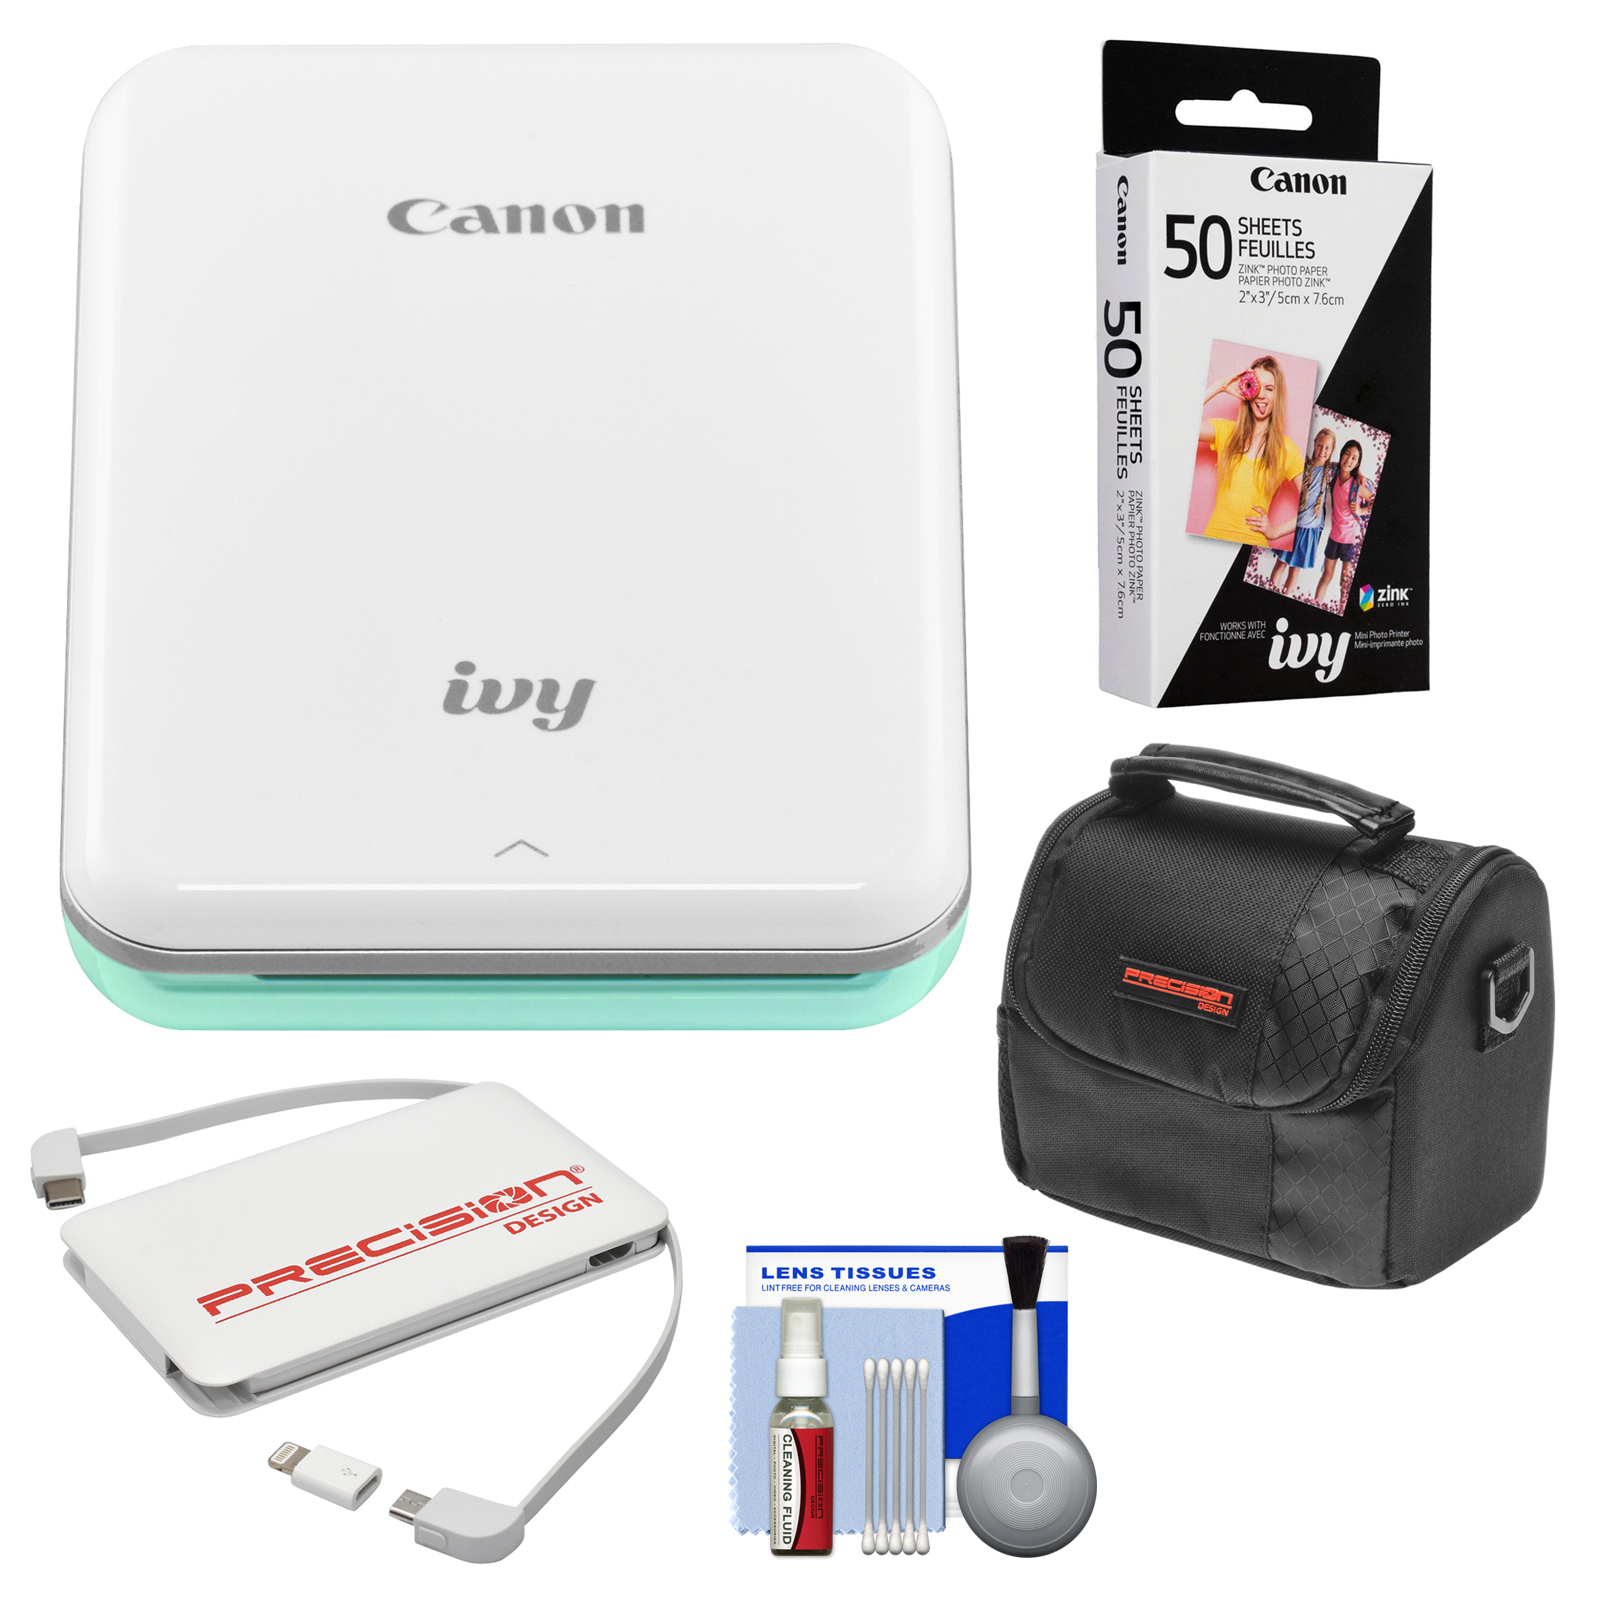 Canon IVY Wireless Bluetooth Mini Photo Printer (Rose Gold) with 50 ZINK Photo Paper Pack + Case + Charger + Kit